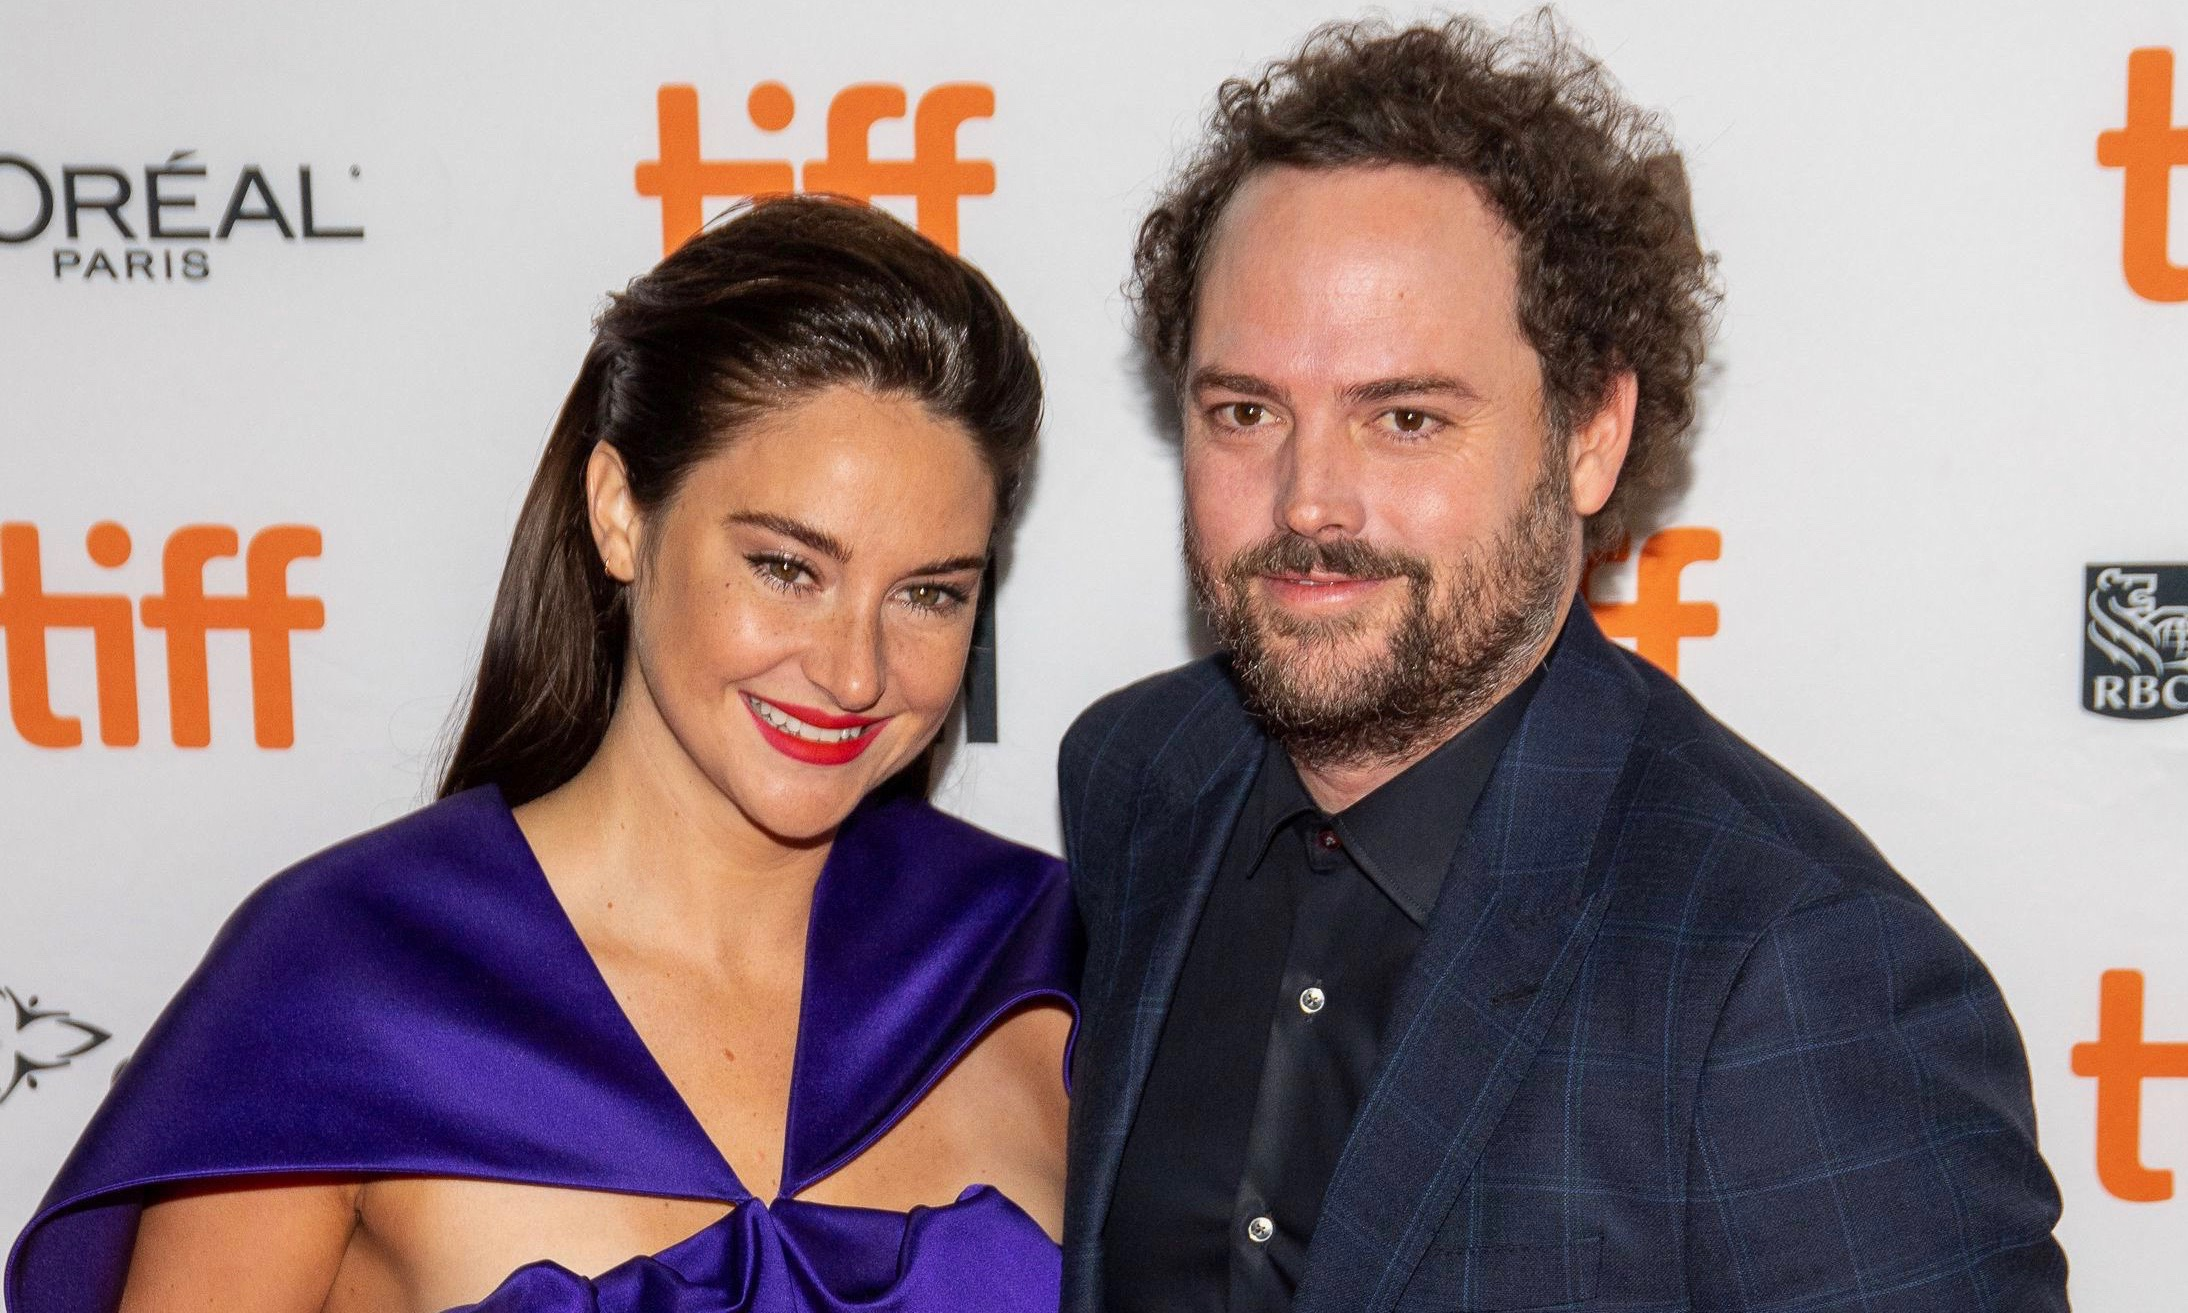 TIFF: When Shailene Woodley Couldn't Stop Crying, Drake Doremus Pivoted Production On 'Endings, Beginnings'